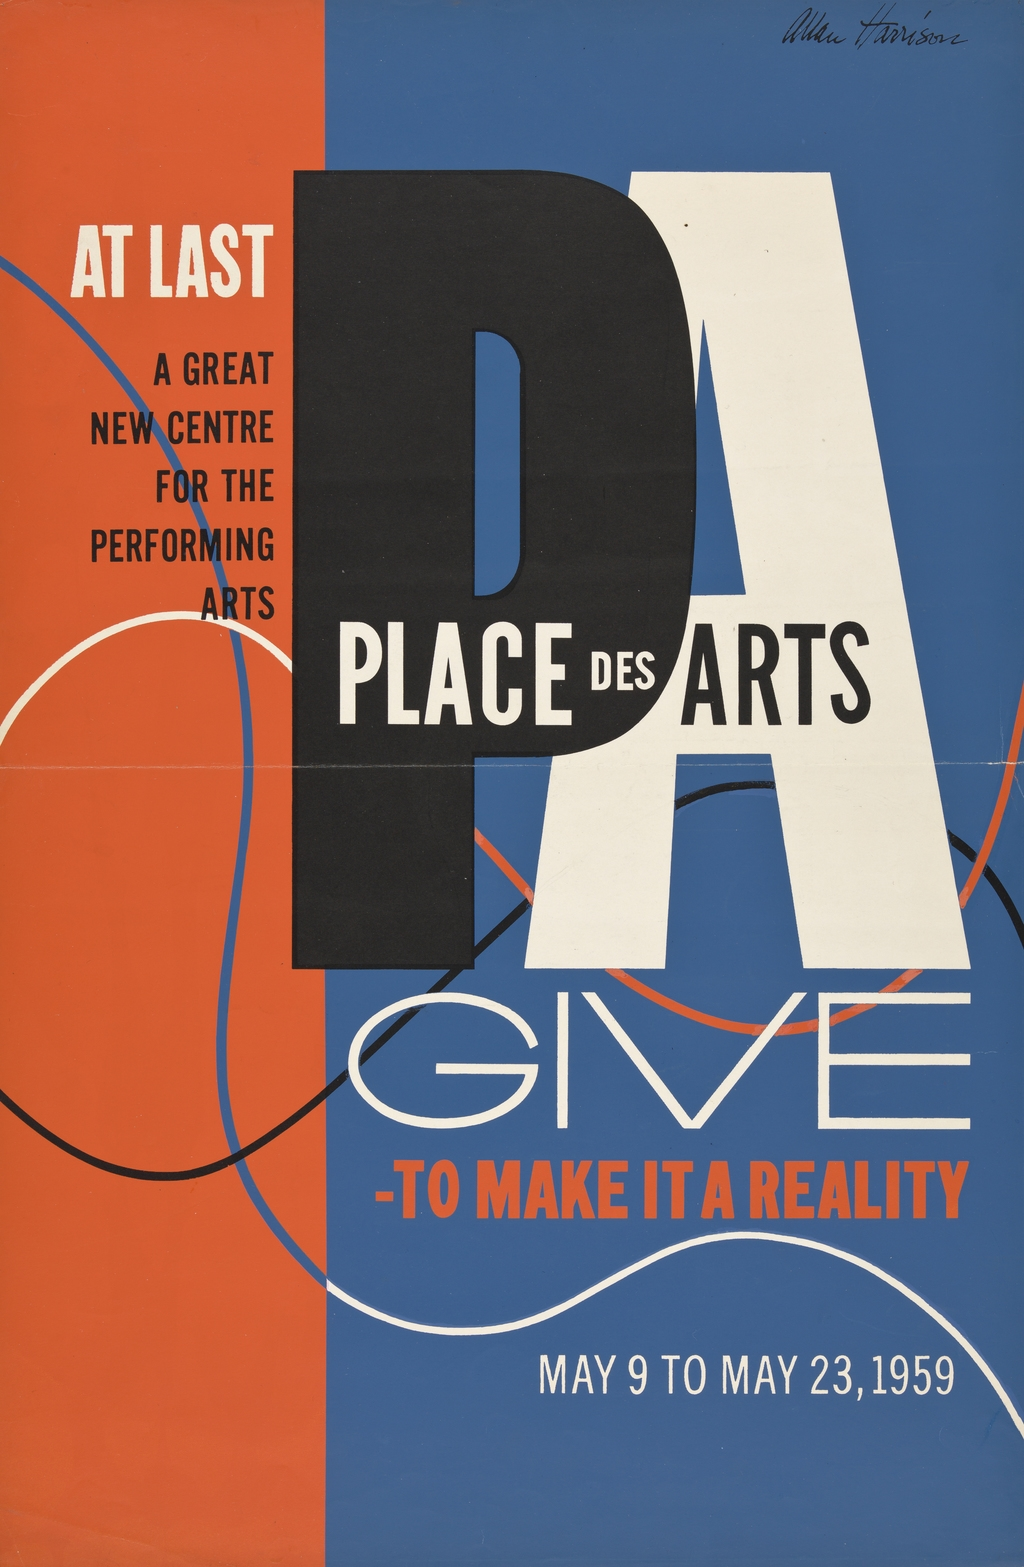 Affiche « Place des Arts. Give to Make it a Reality »